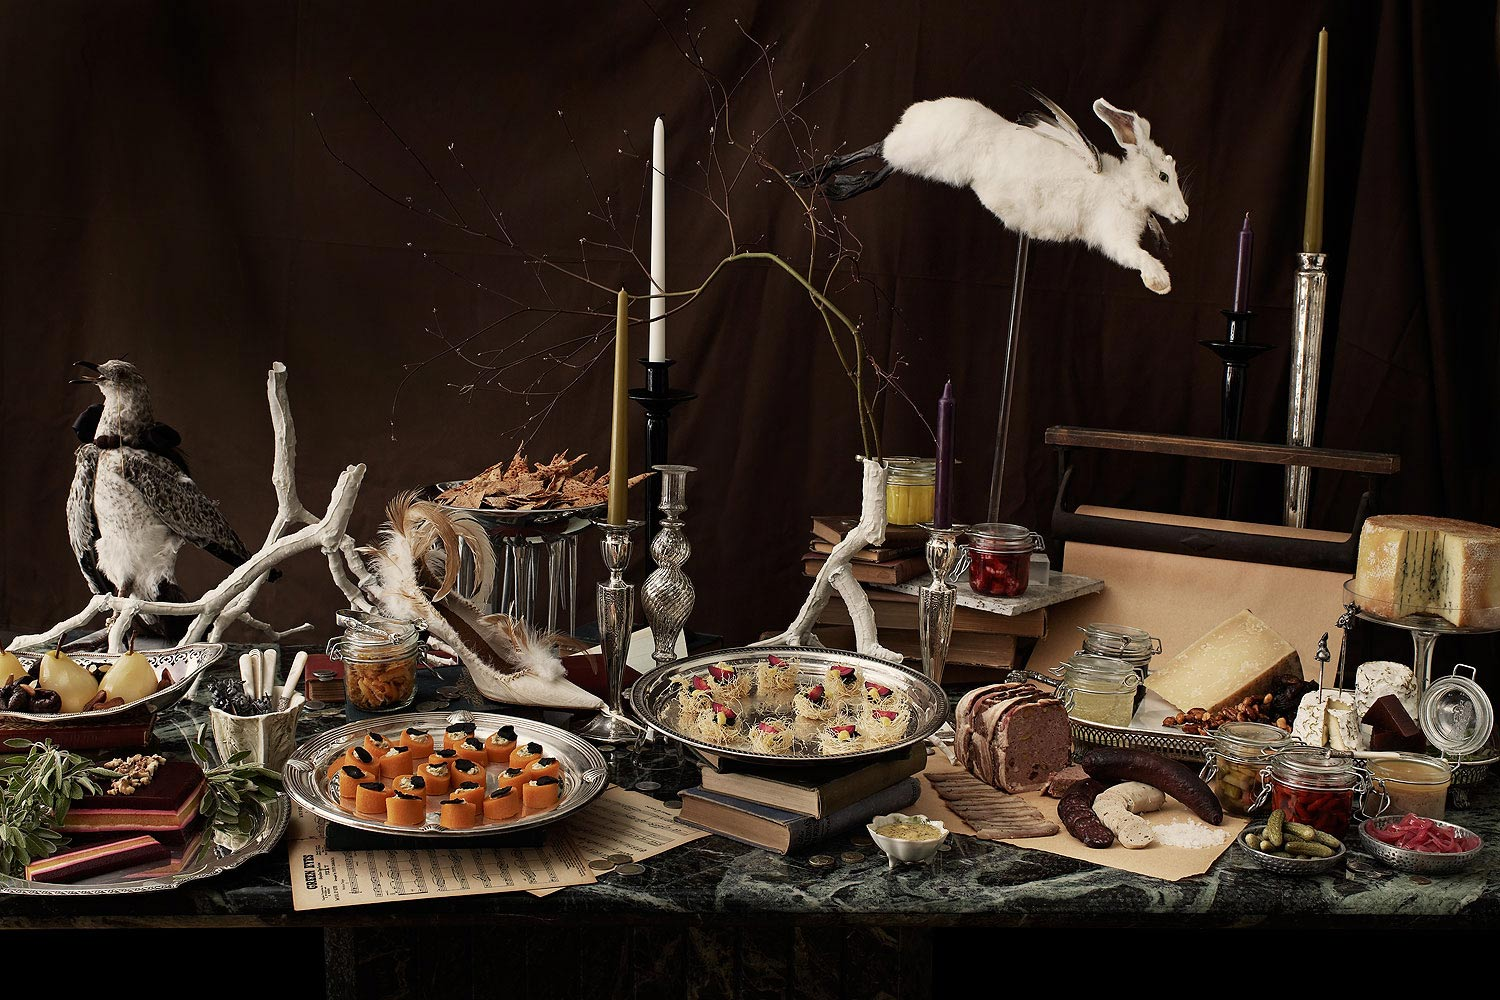 Eclectic dinner party table with taxidermy rabbit